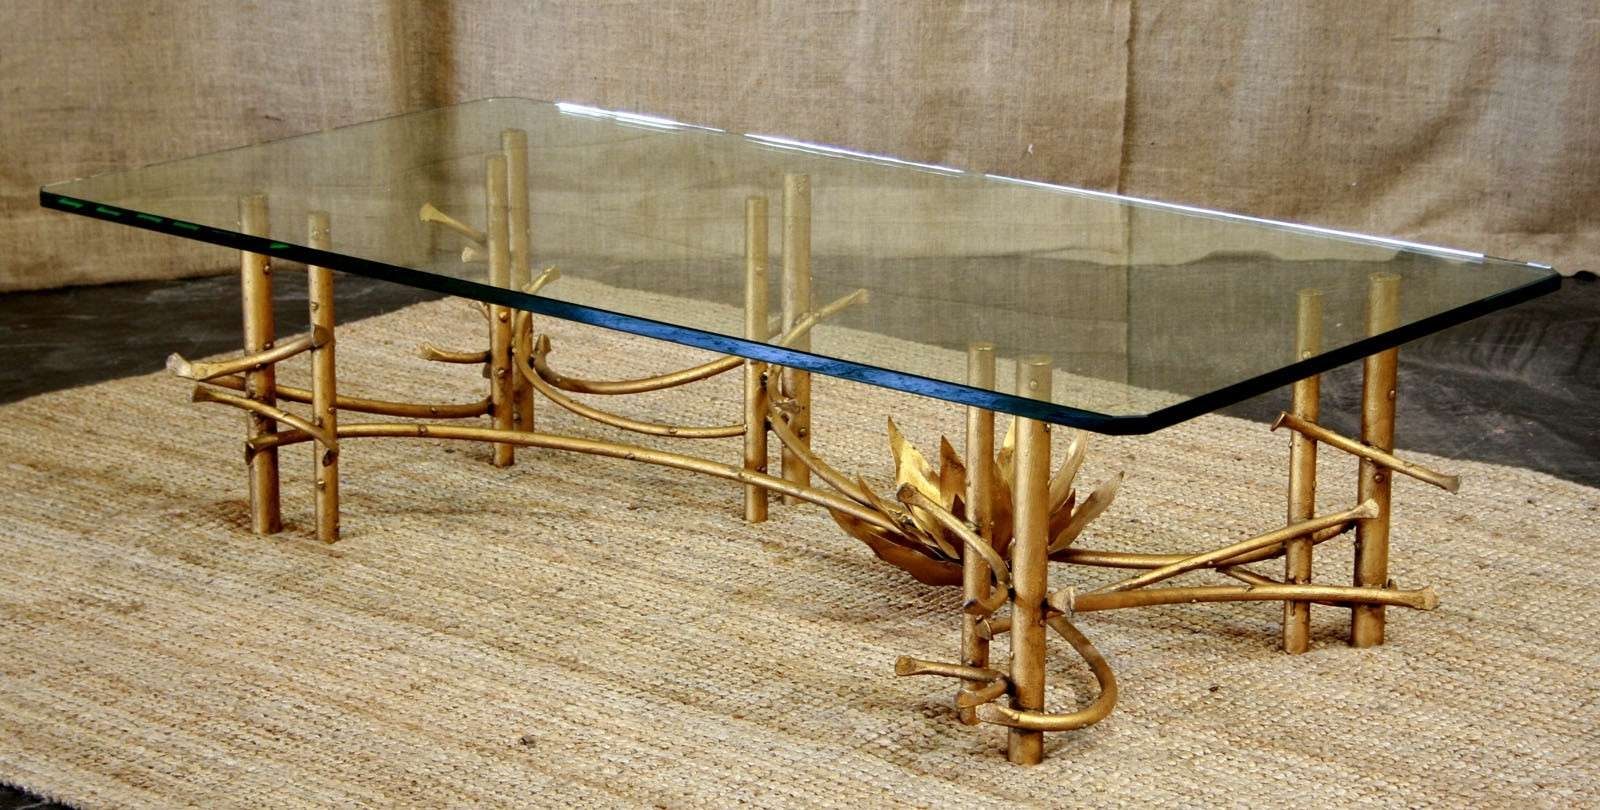 Gold Bamboo Glass Coffee Table Inspirational Excellent Bamboo Intended For Most Up To Date Gold Bamboo Coffee Tables (View 10 of 20)